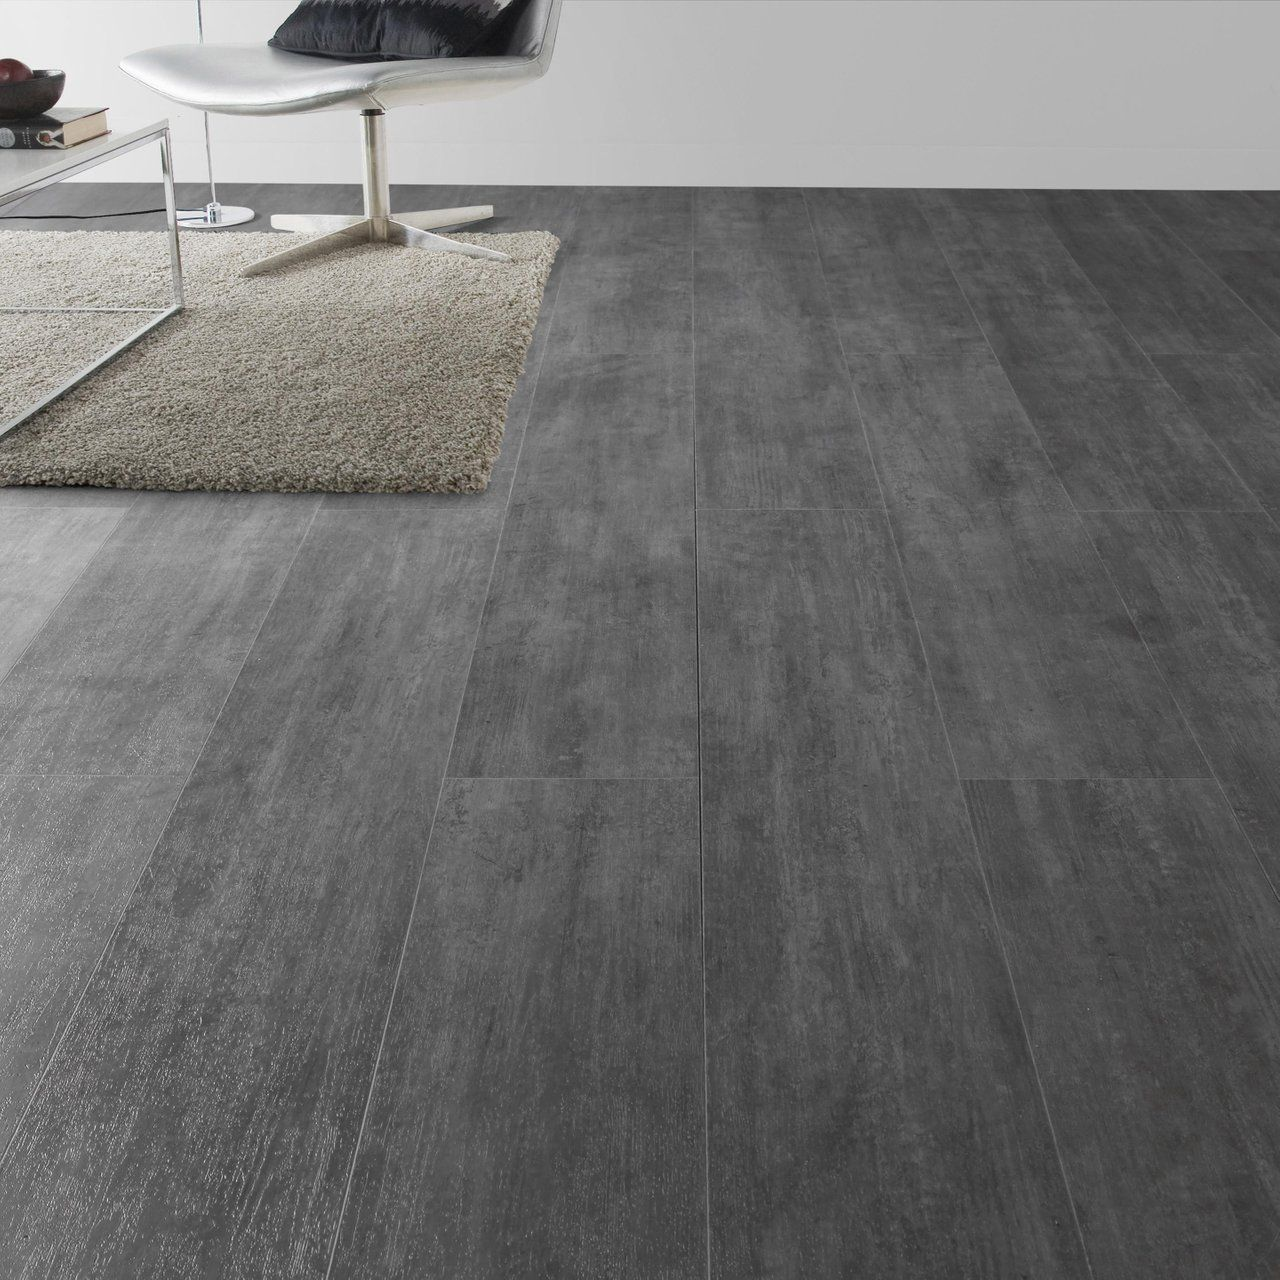 Lame Pvc Clipsable Nolita Grey Gerflor Senso Premium Clic Leroy Merlin Sol Pvc Sol Pvc Clipsable Lame Pvc Clipsable